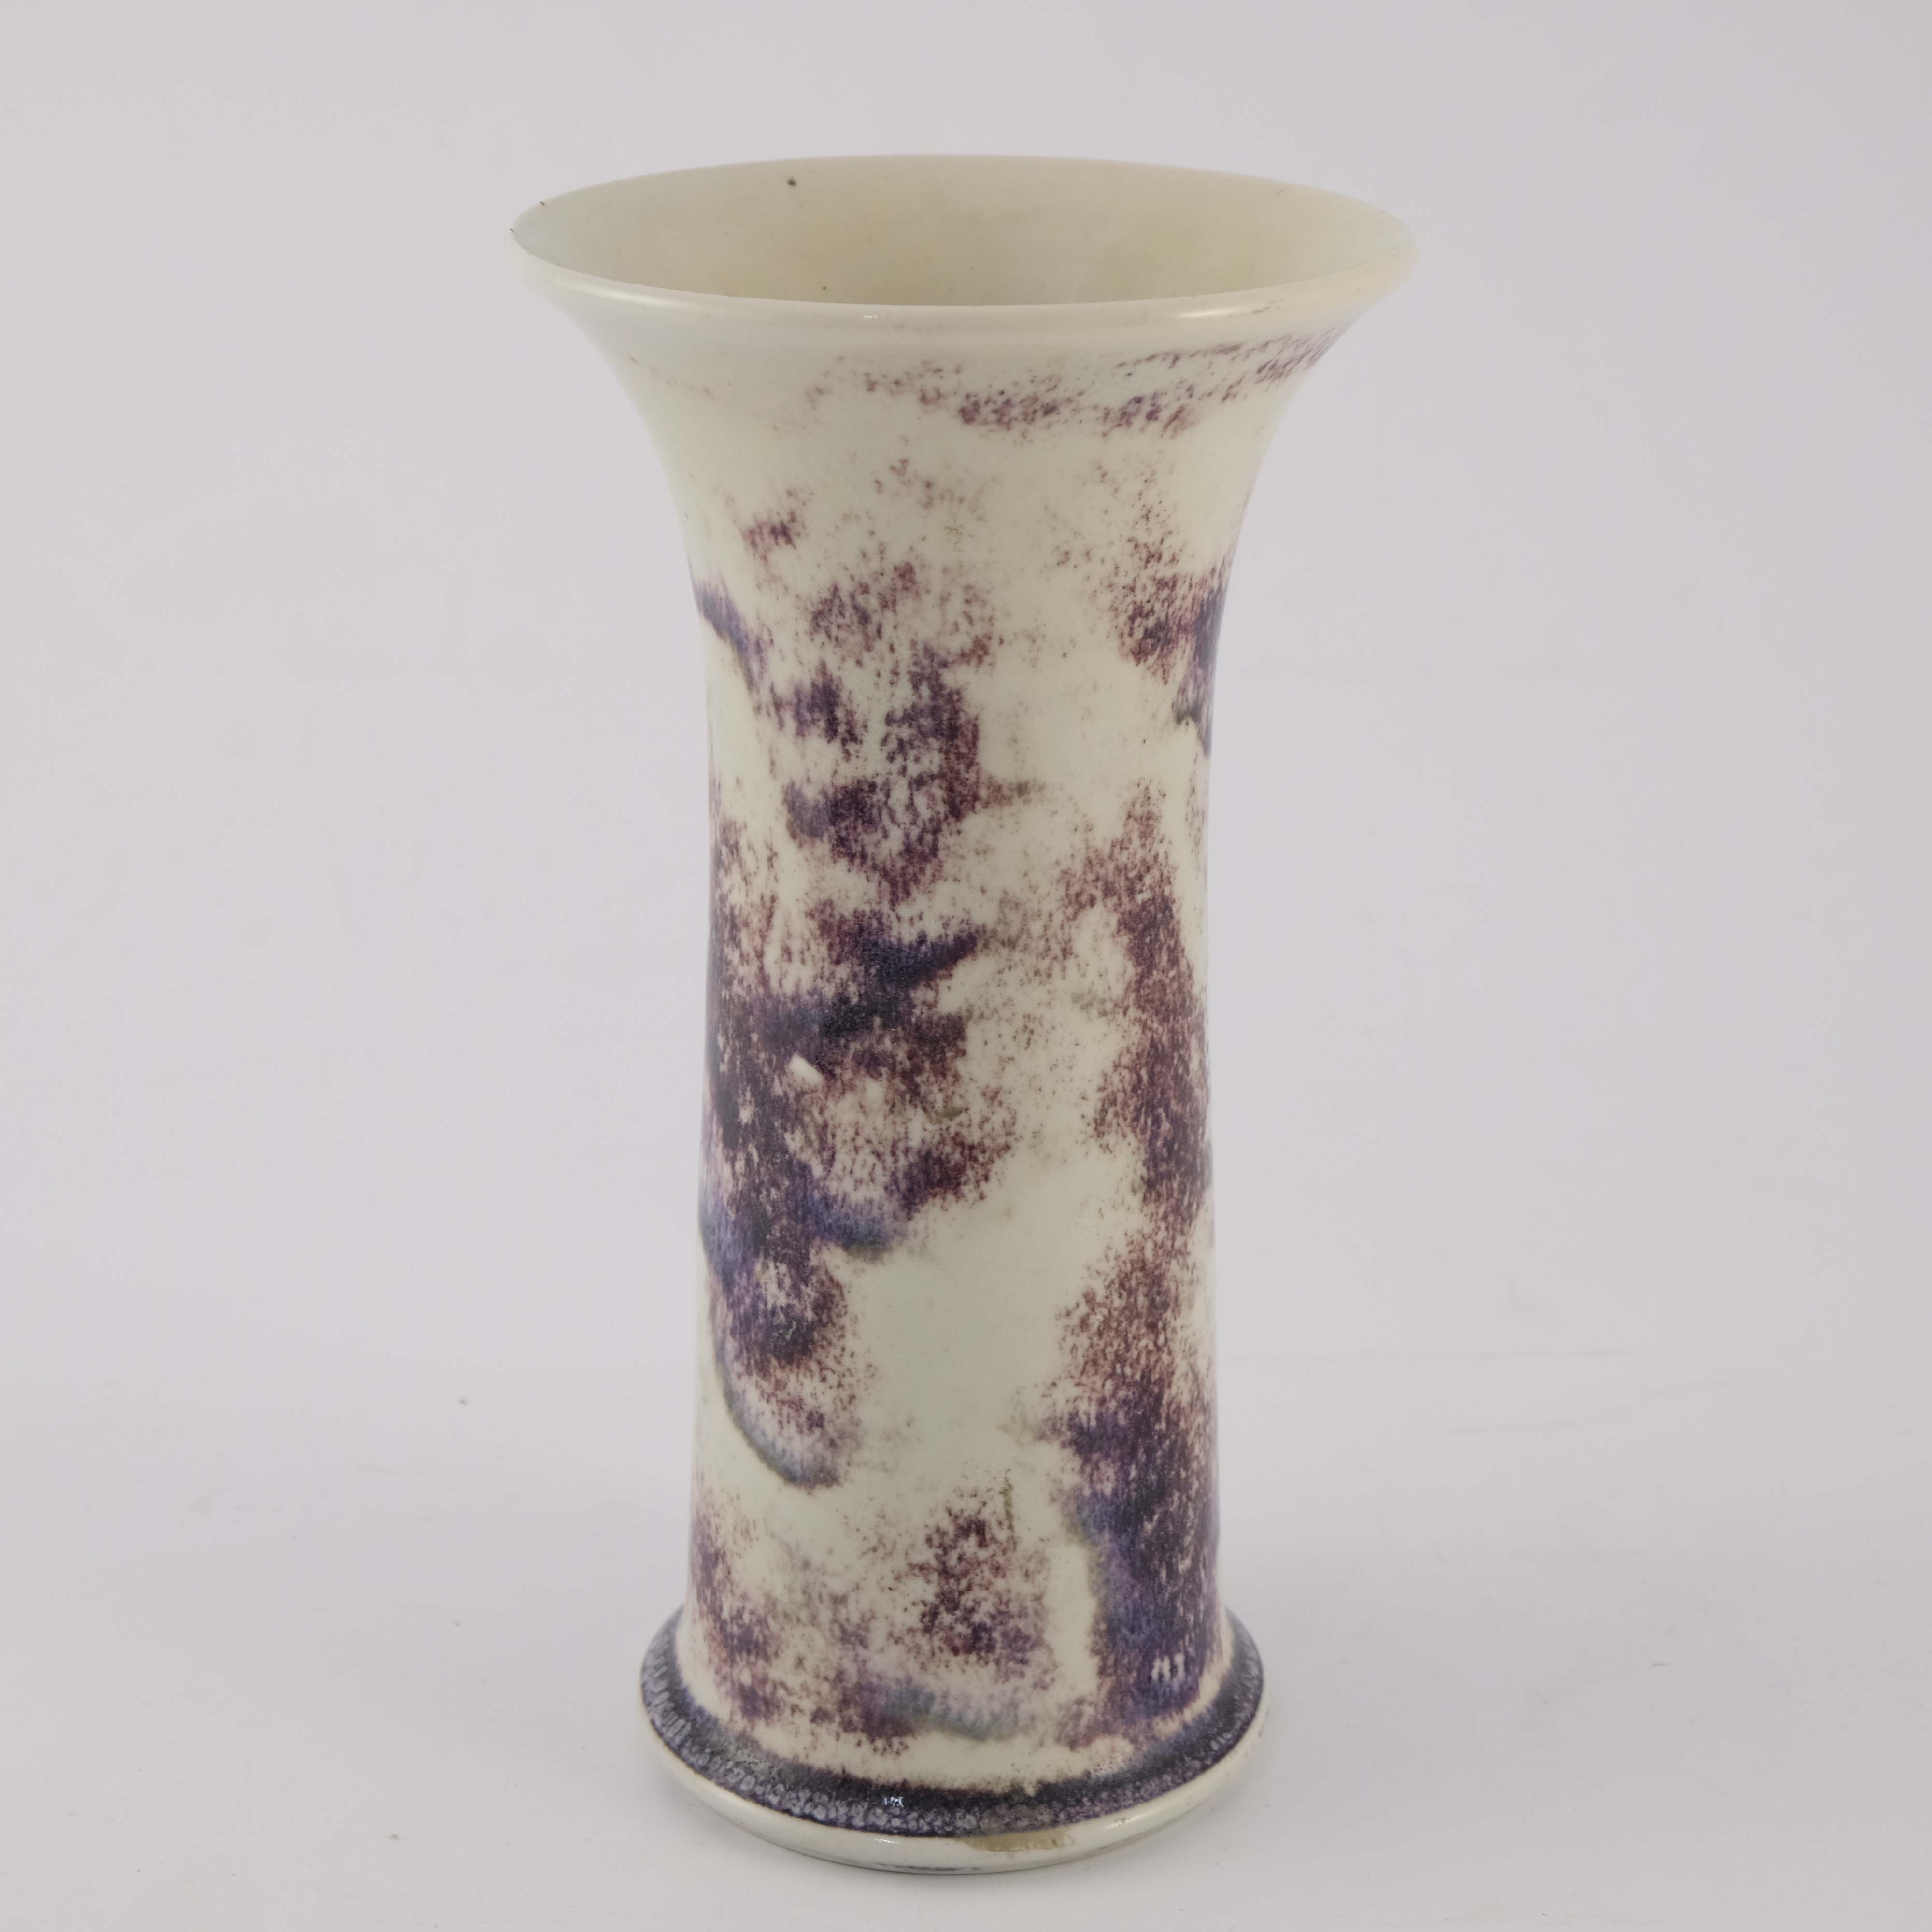 Ruskin Pottery, a High Fired Lily vase - Image 3 of 4